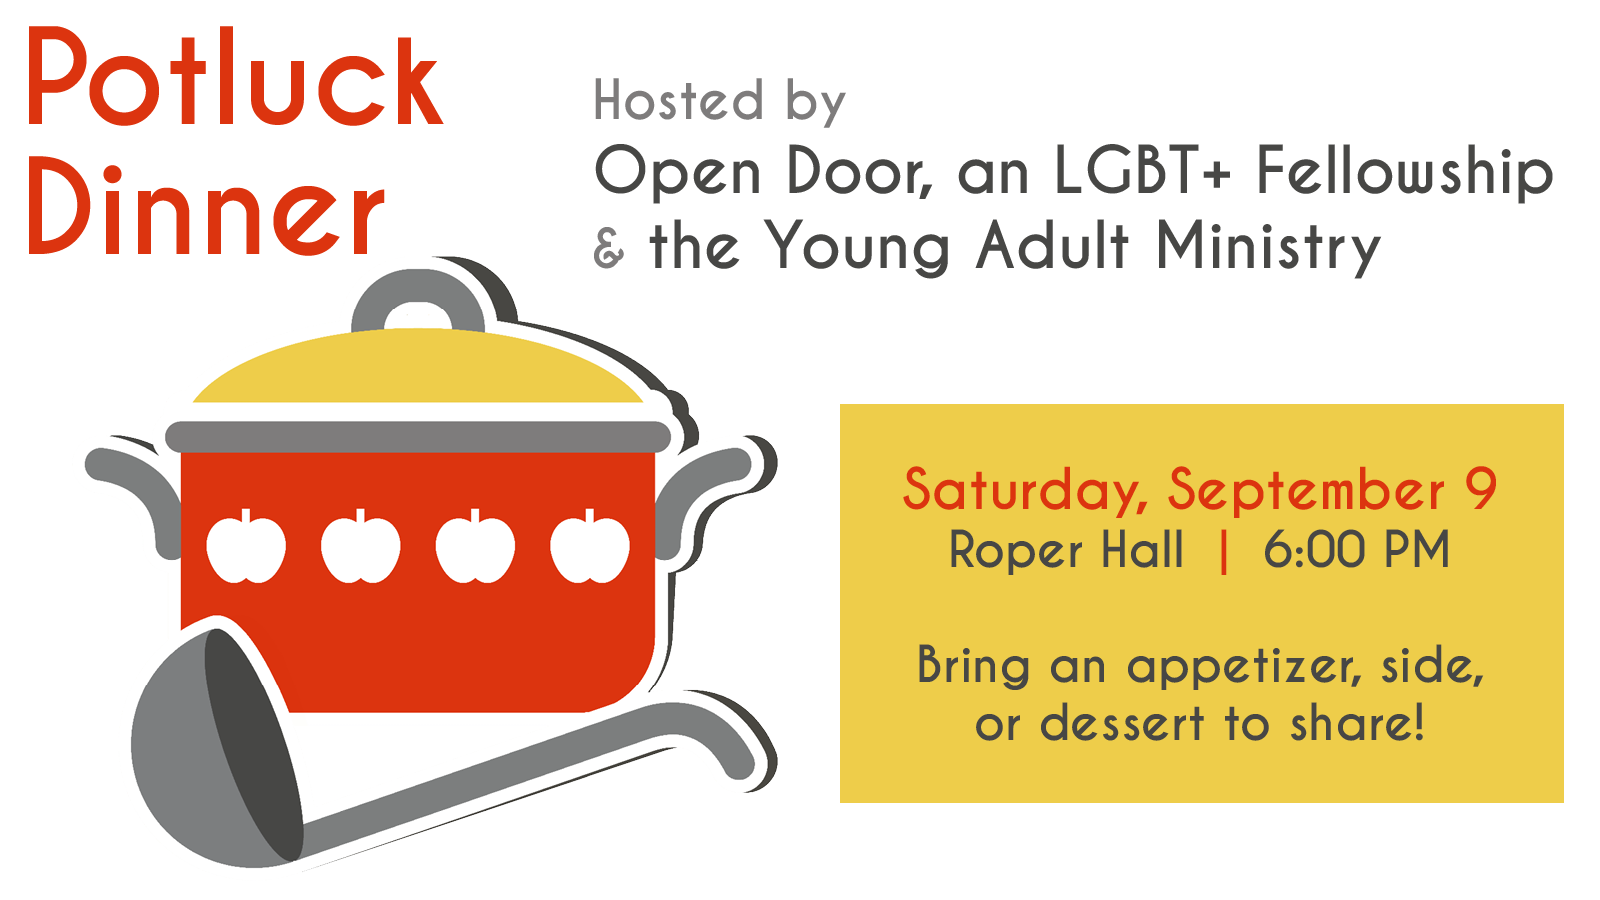 Open Door Fellowship and Young Adult Ministry Potluck  sc 1 st  Episcopal Church of the Transfiguration & Open Door Fellowship and Young Adult Ministry Potluck u2013 Episcopal ...